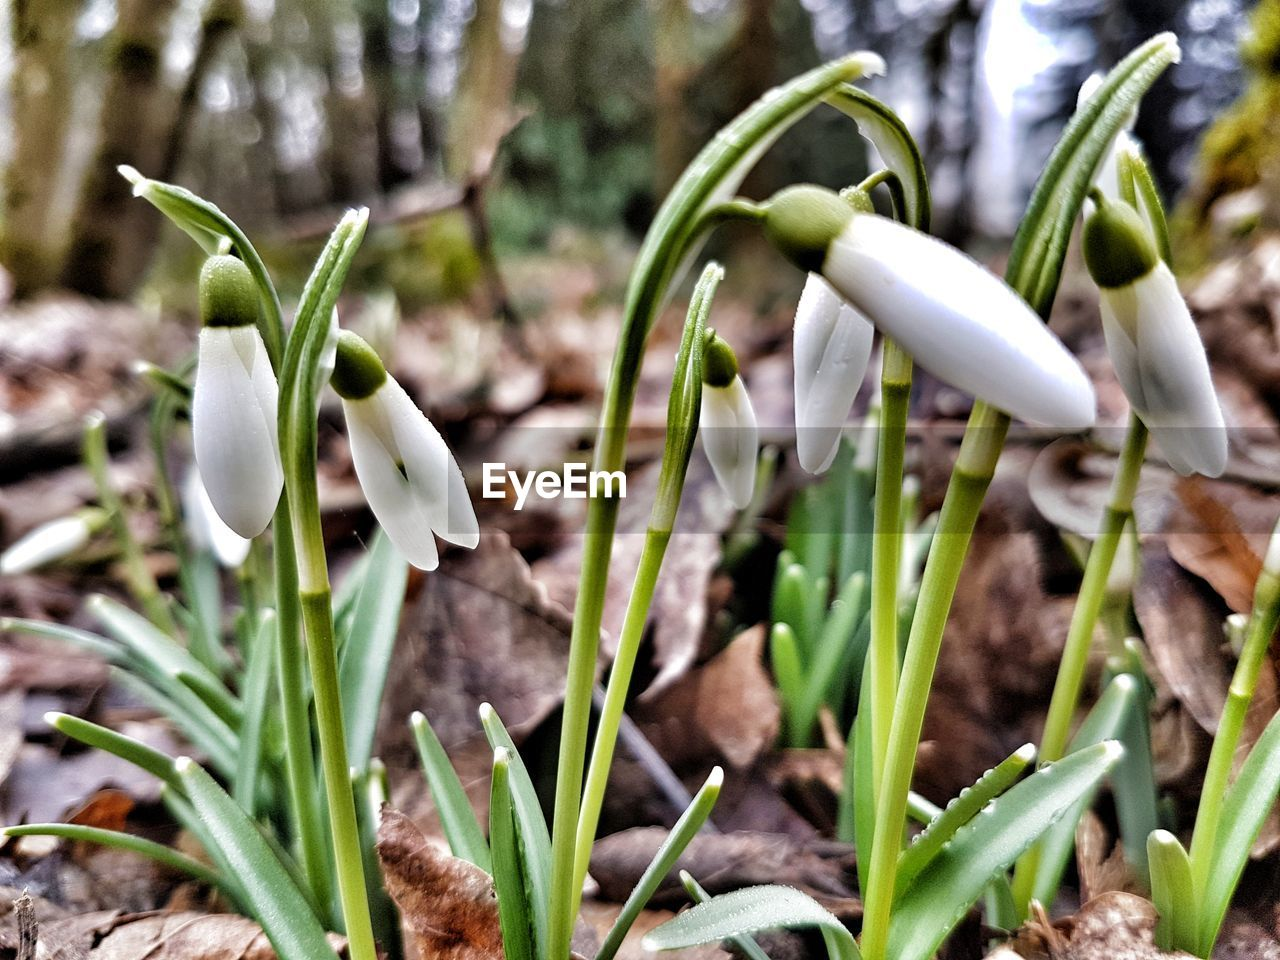 snowdrop, growth, nature, flower, fragility, beauty in nature, petal, freshness, white color, plant, flower head, green color, close-up, day, no people, outdoors, blooming, crocus